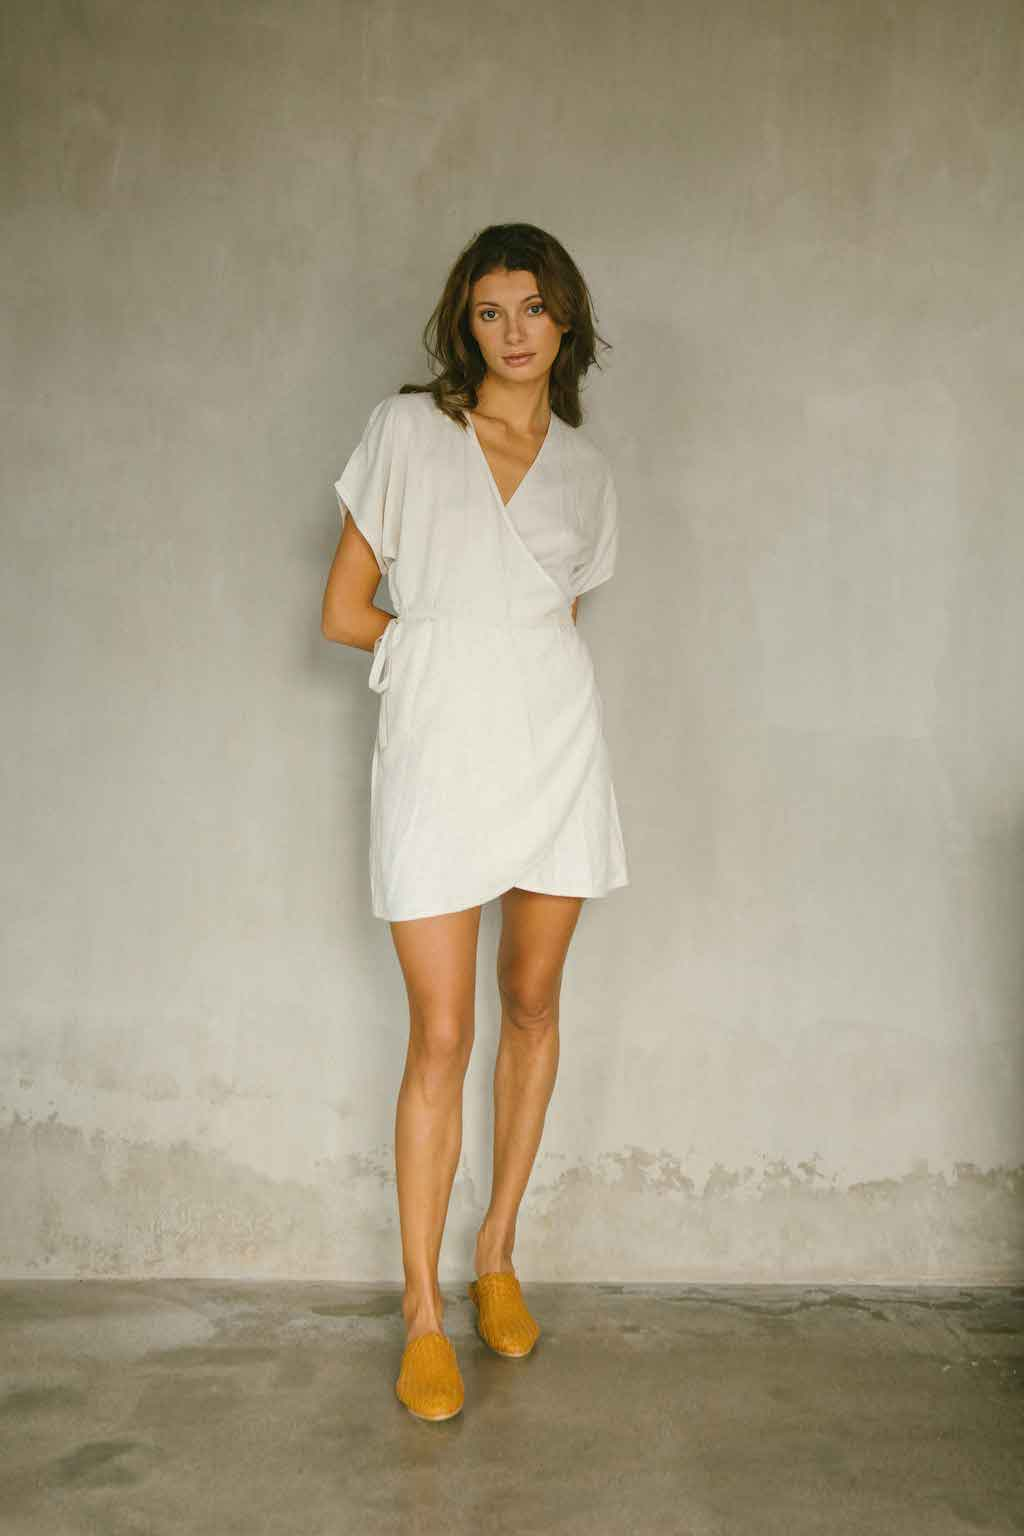 Wrap dress with V-neckline, made from linen rayon blend